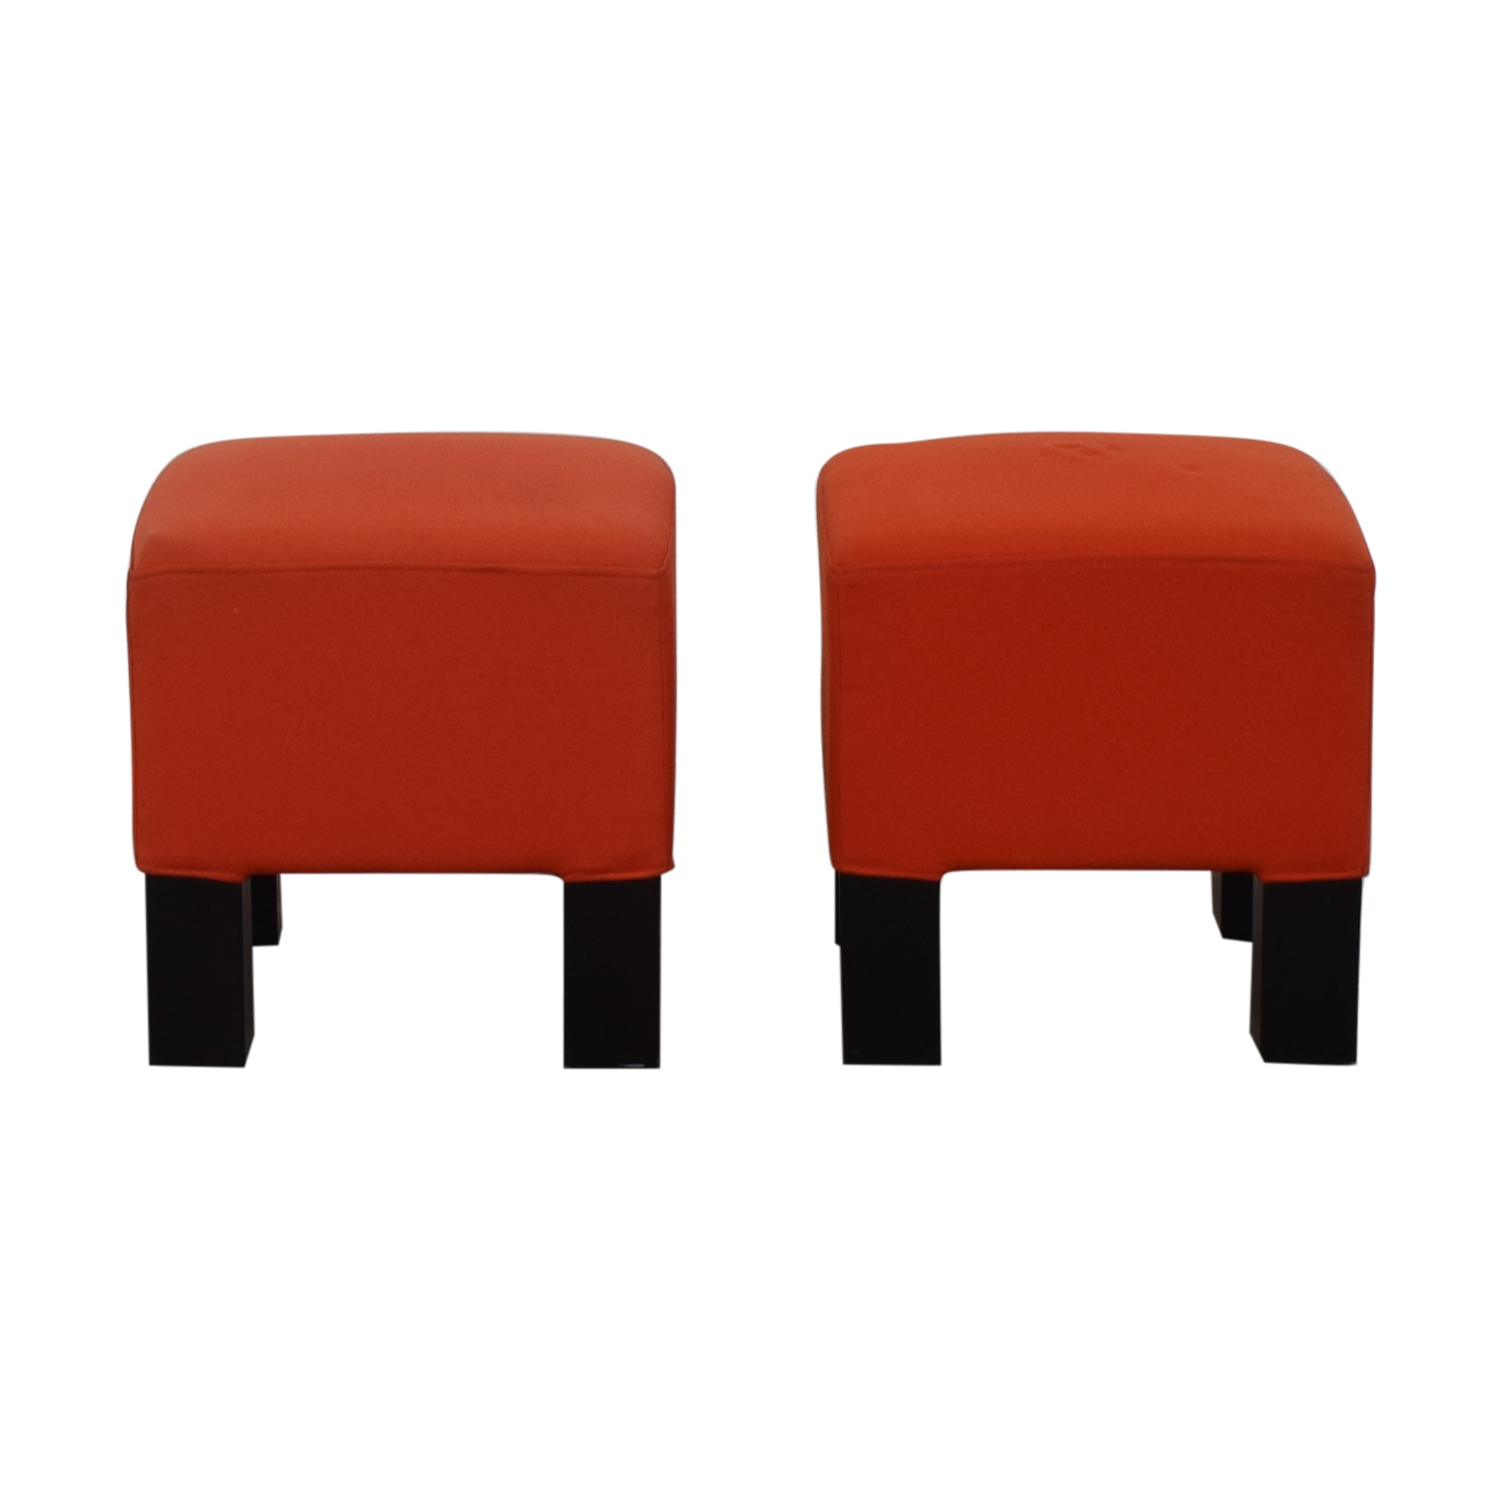 CB2 Orange Ottoman Cubes / Chairs